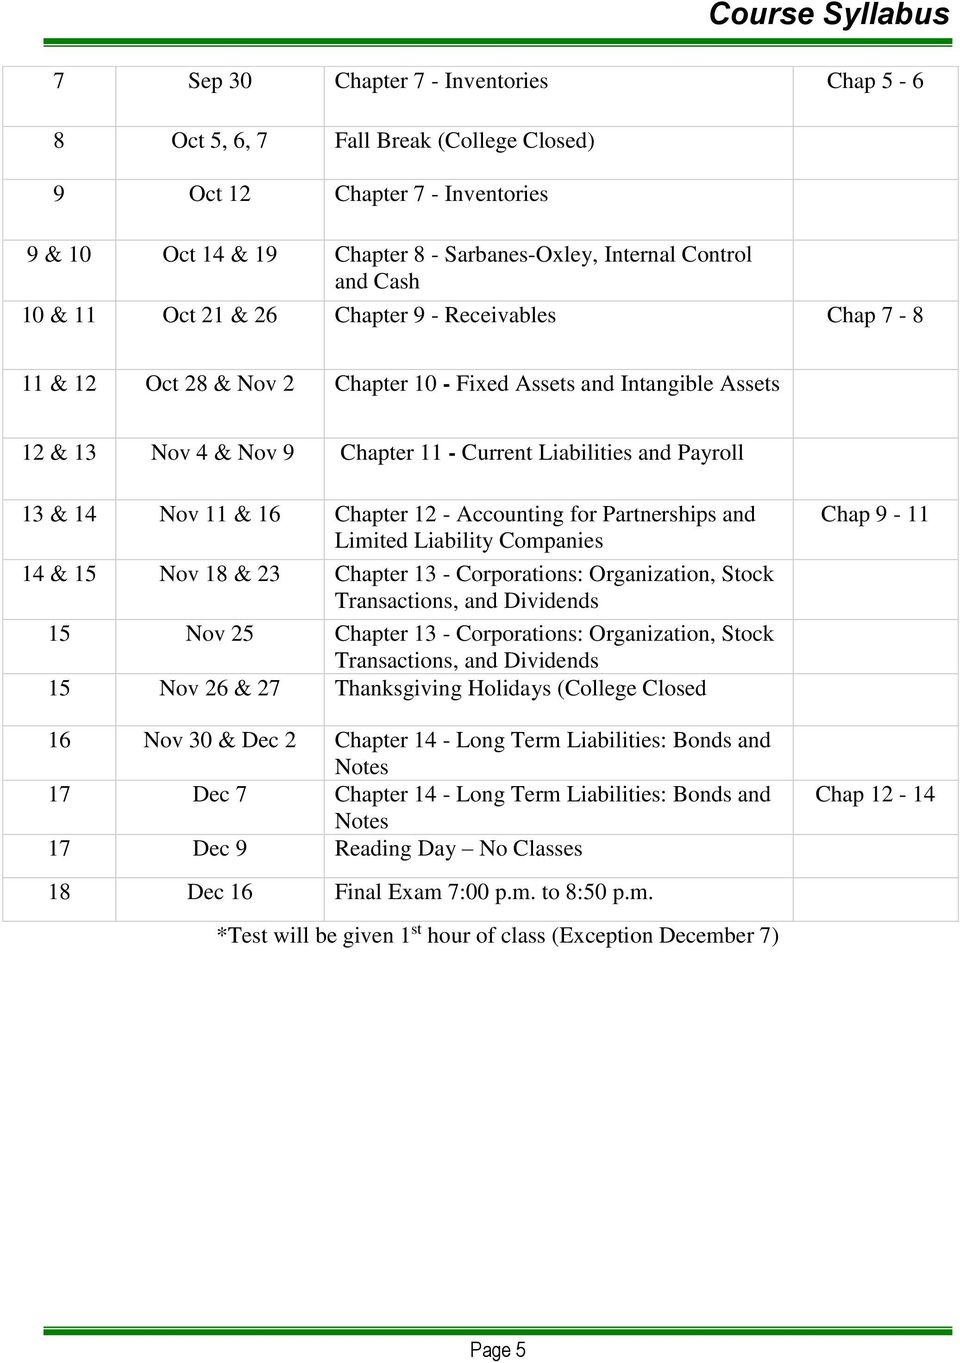 16 Chapter 12 - Accounting for Partnerships and Limited Liability Companies 14 & 15 Nov 18 & 23 Chapter 13 - Corporations: Organization, Stock Transactions, and Dividends 15 Nov 25 Chapter 13 -